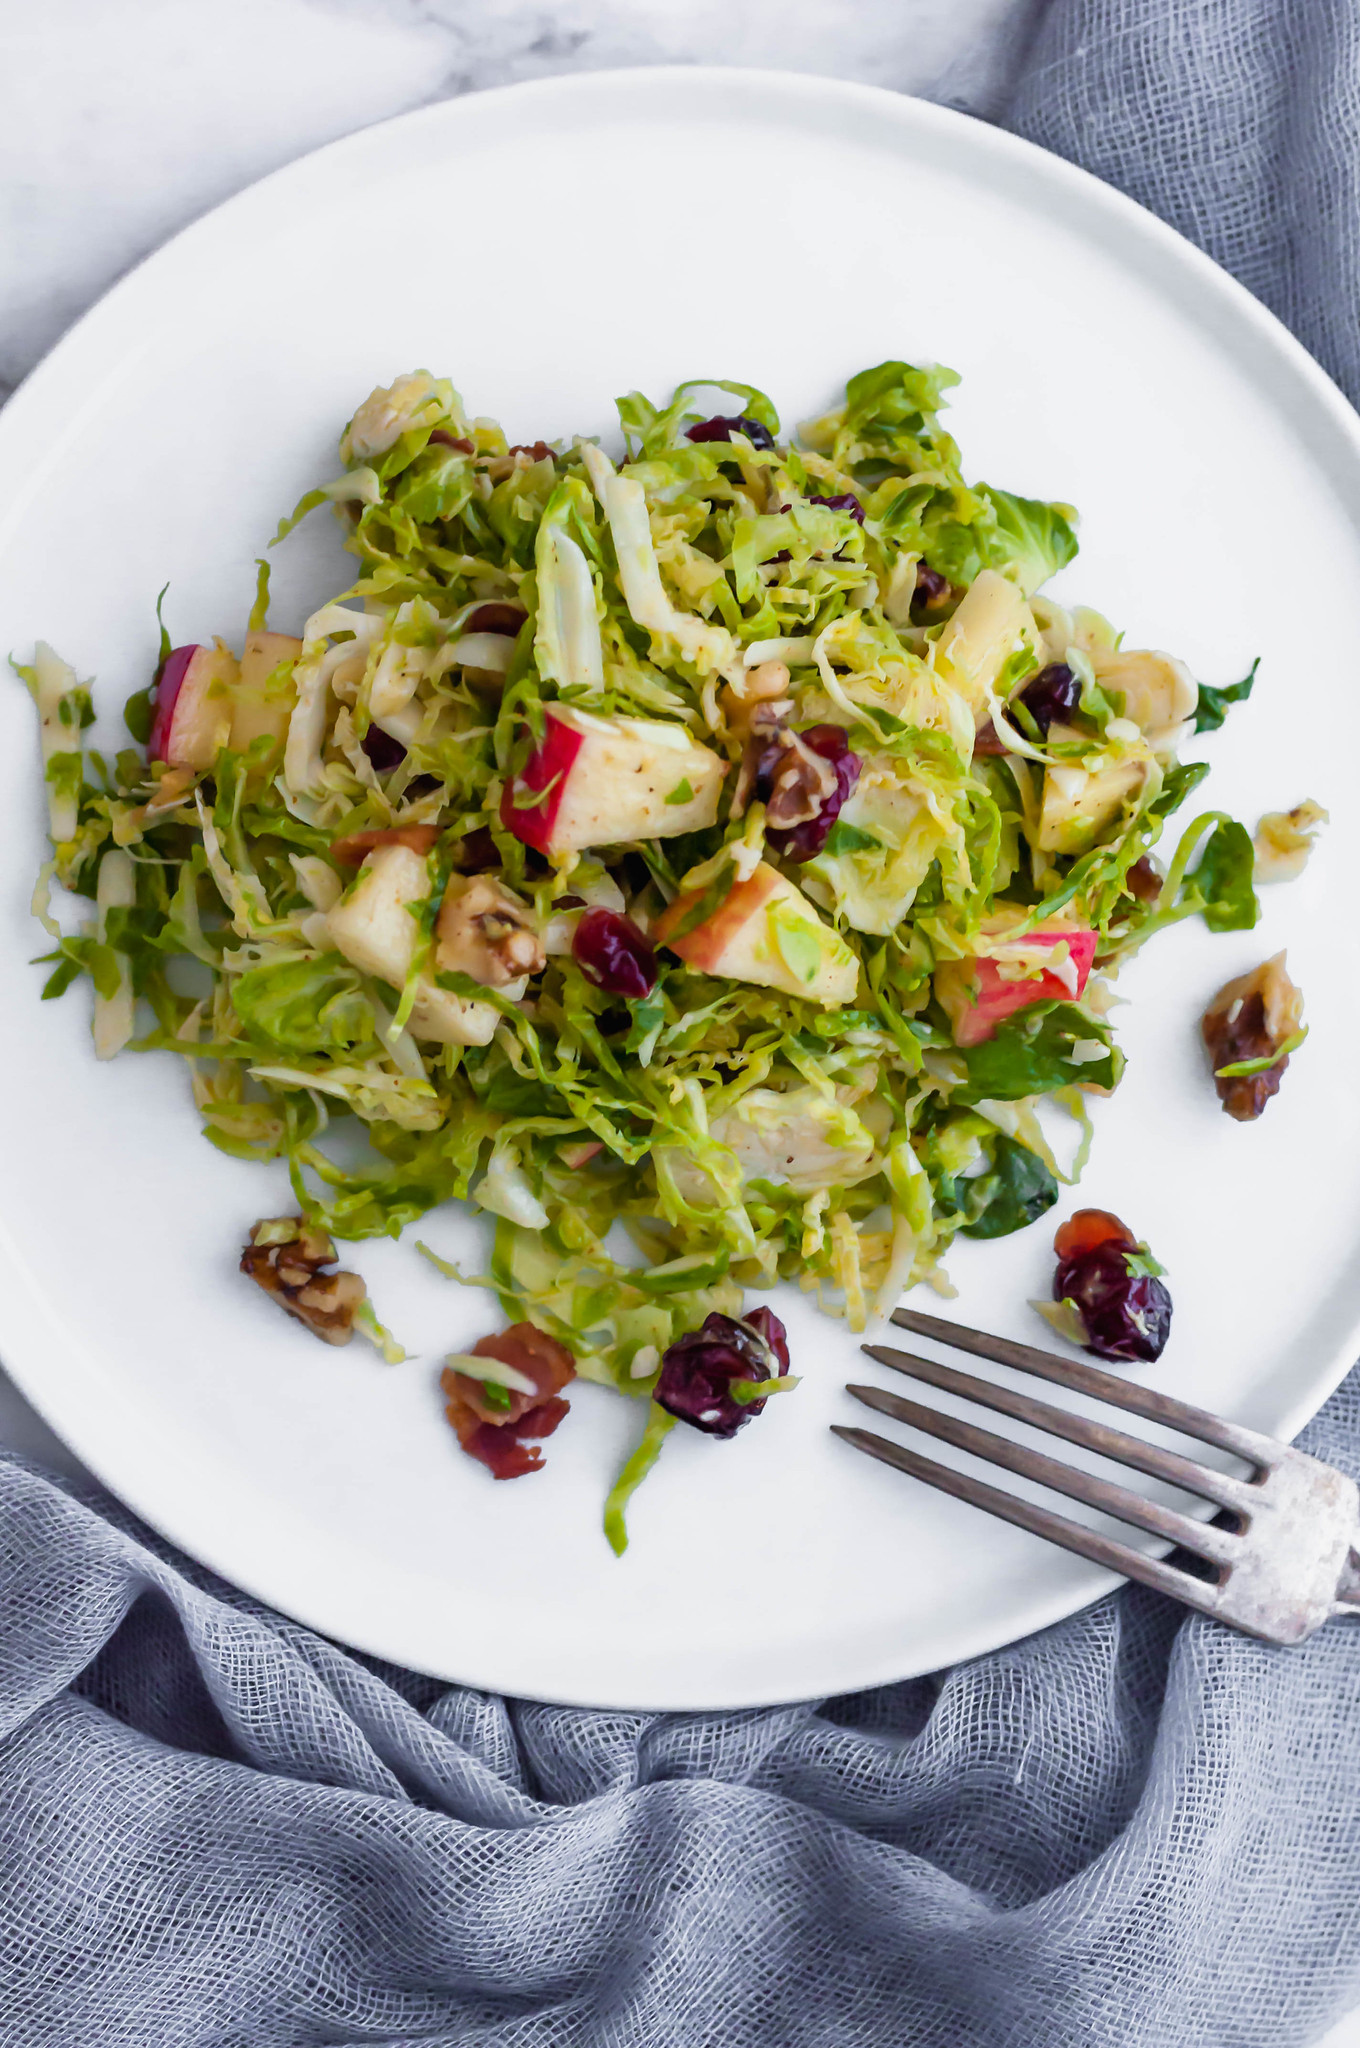 This Shaved Brussels Sprouts Salad is the perfect addition to your Thanksgiving table. It's bringing all the fresh fall vibes. Full of fresh shaved brussels sprouts, honeycrisp apples, craisins, sharp cheddar cheese, toasted walnuts and the most delicious honey mustard vinaigrette. Prepare the ingredients ahead of time and toss together at the last minute for a stress free holiday dinner.